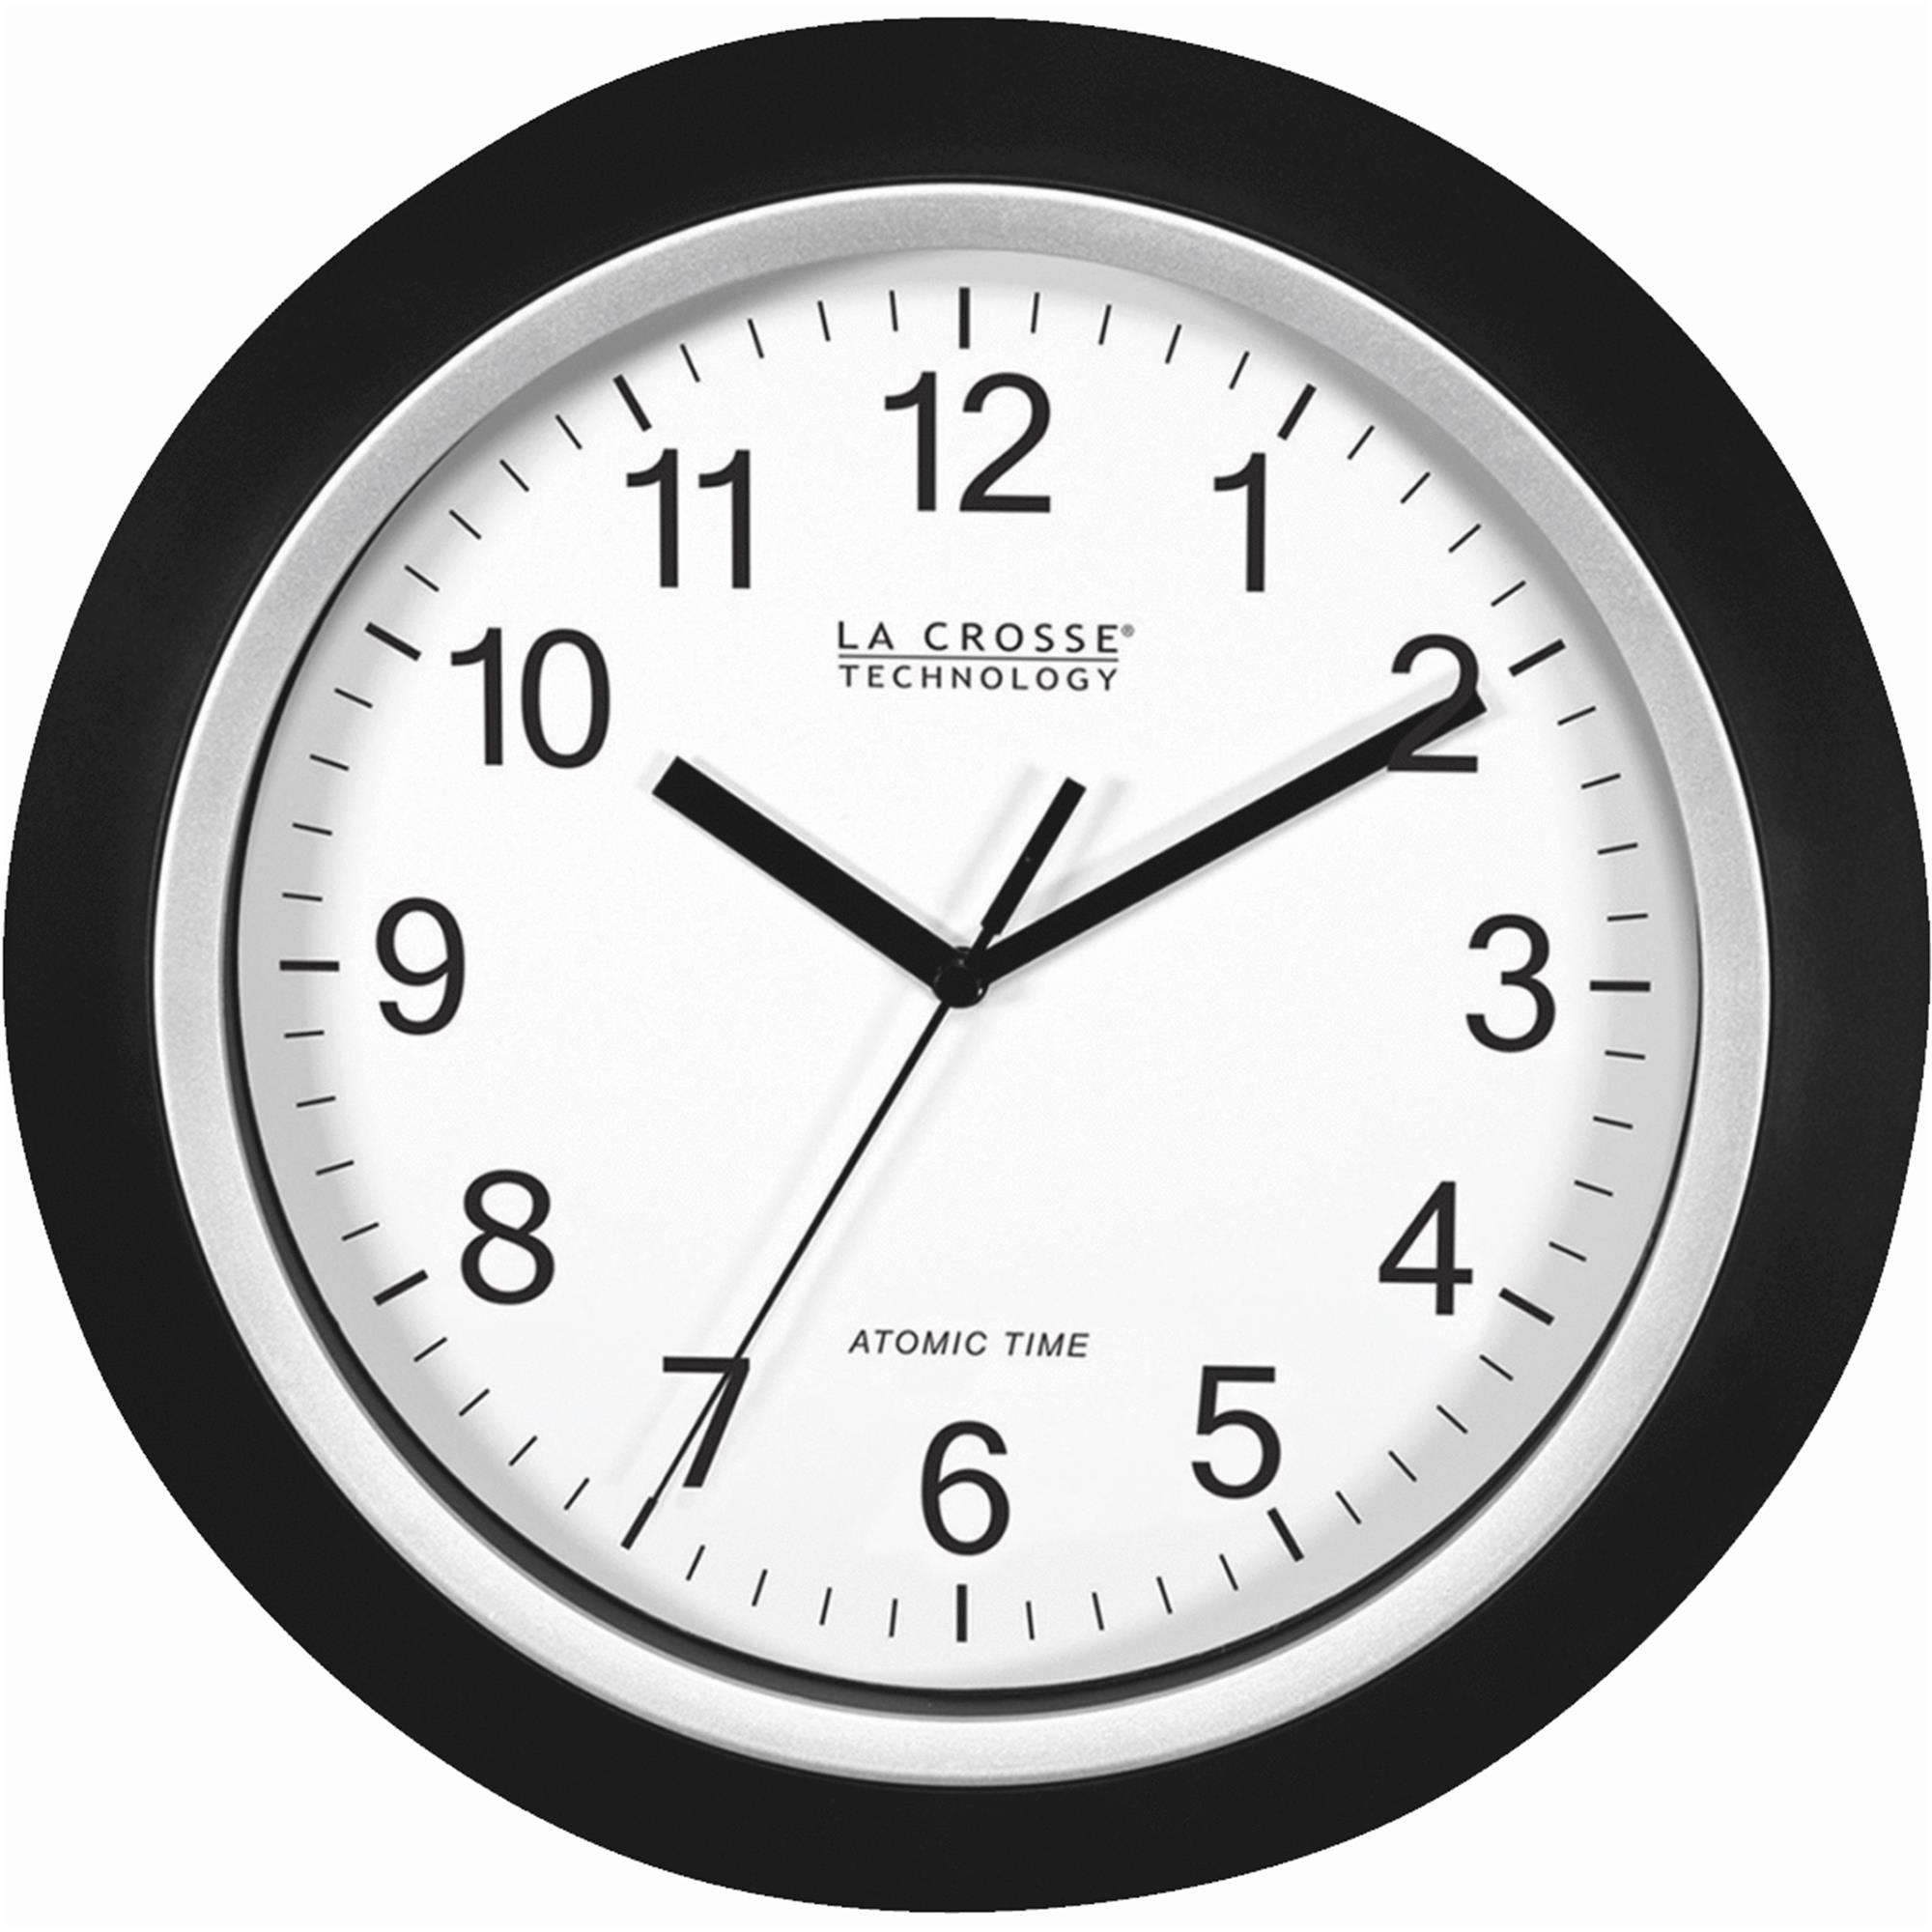 La Crosse Technology Atomic Analog Wall Clock